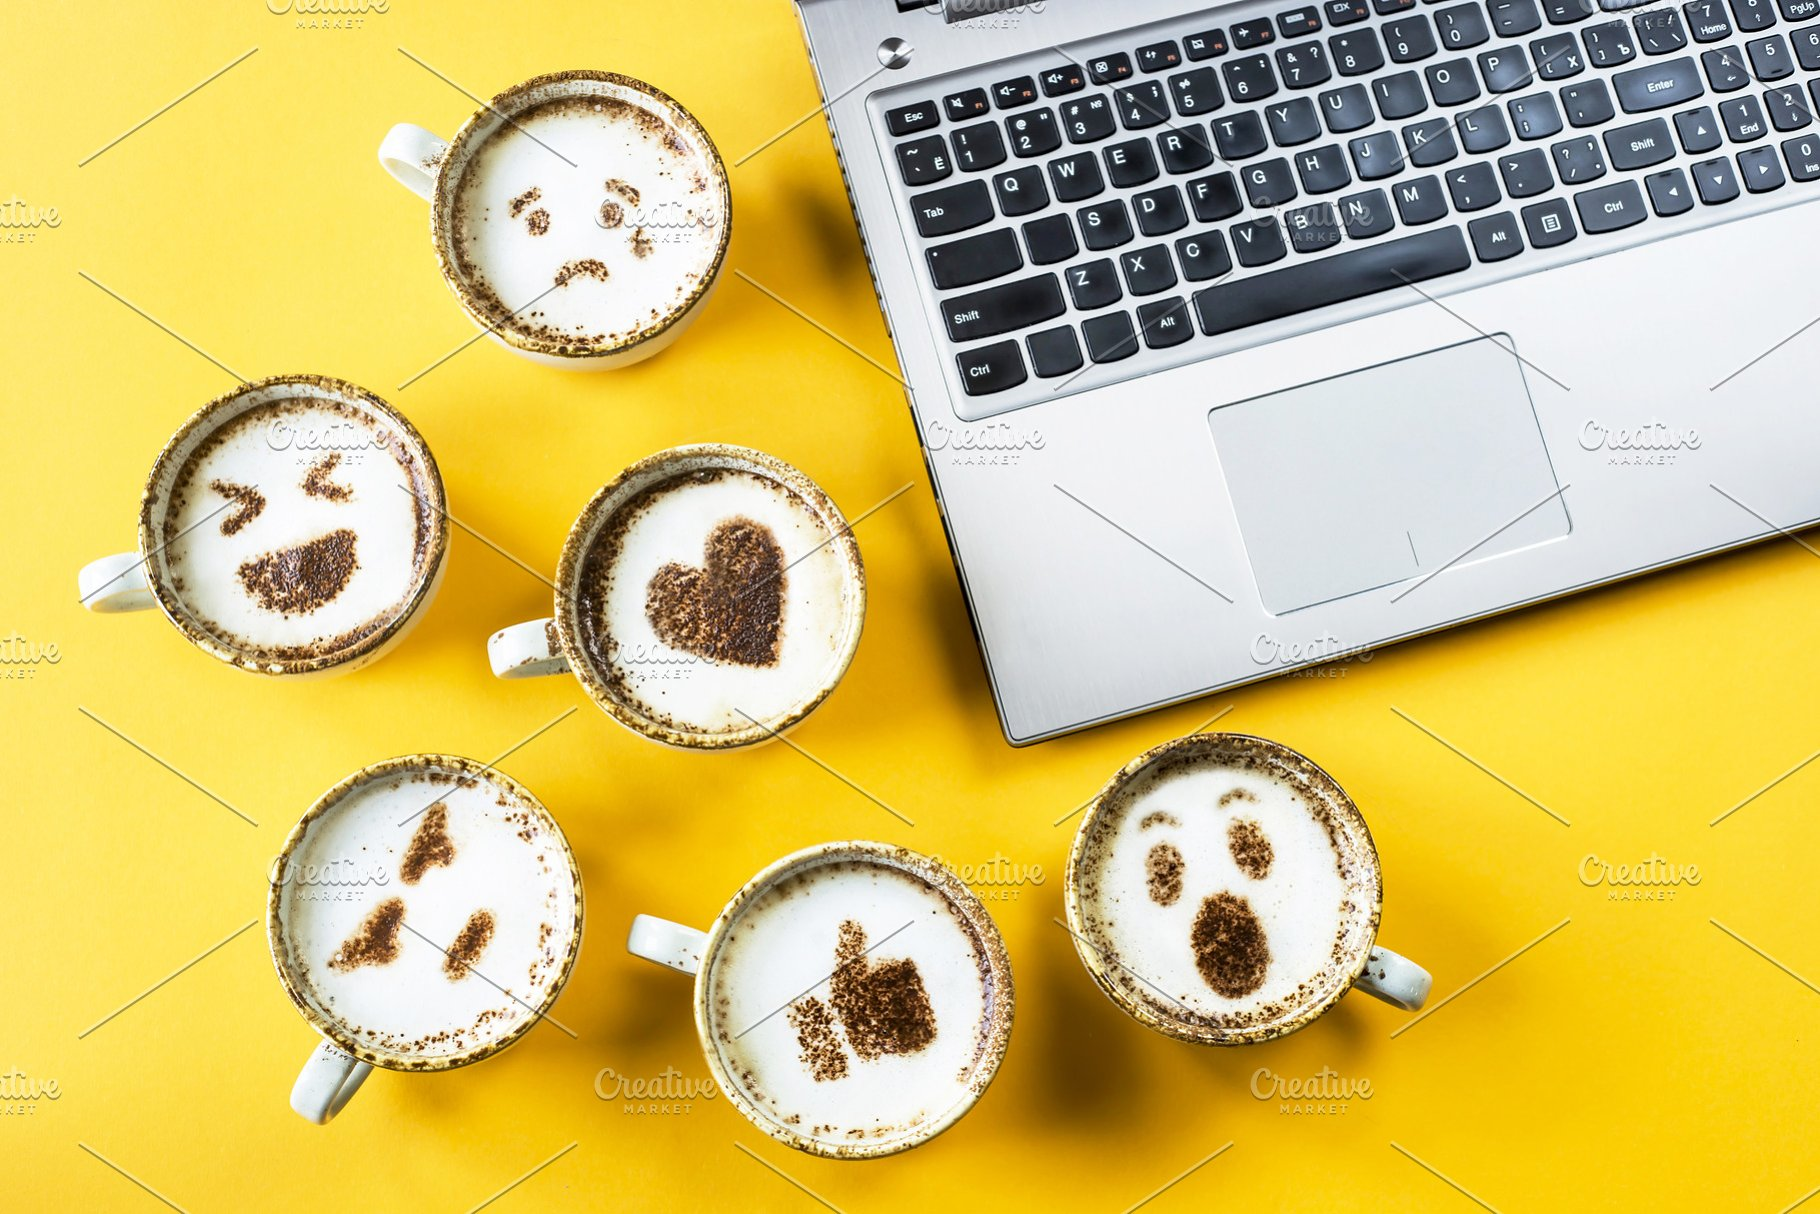 Emoji from Facebook on cups of coffe